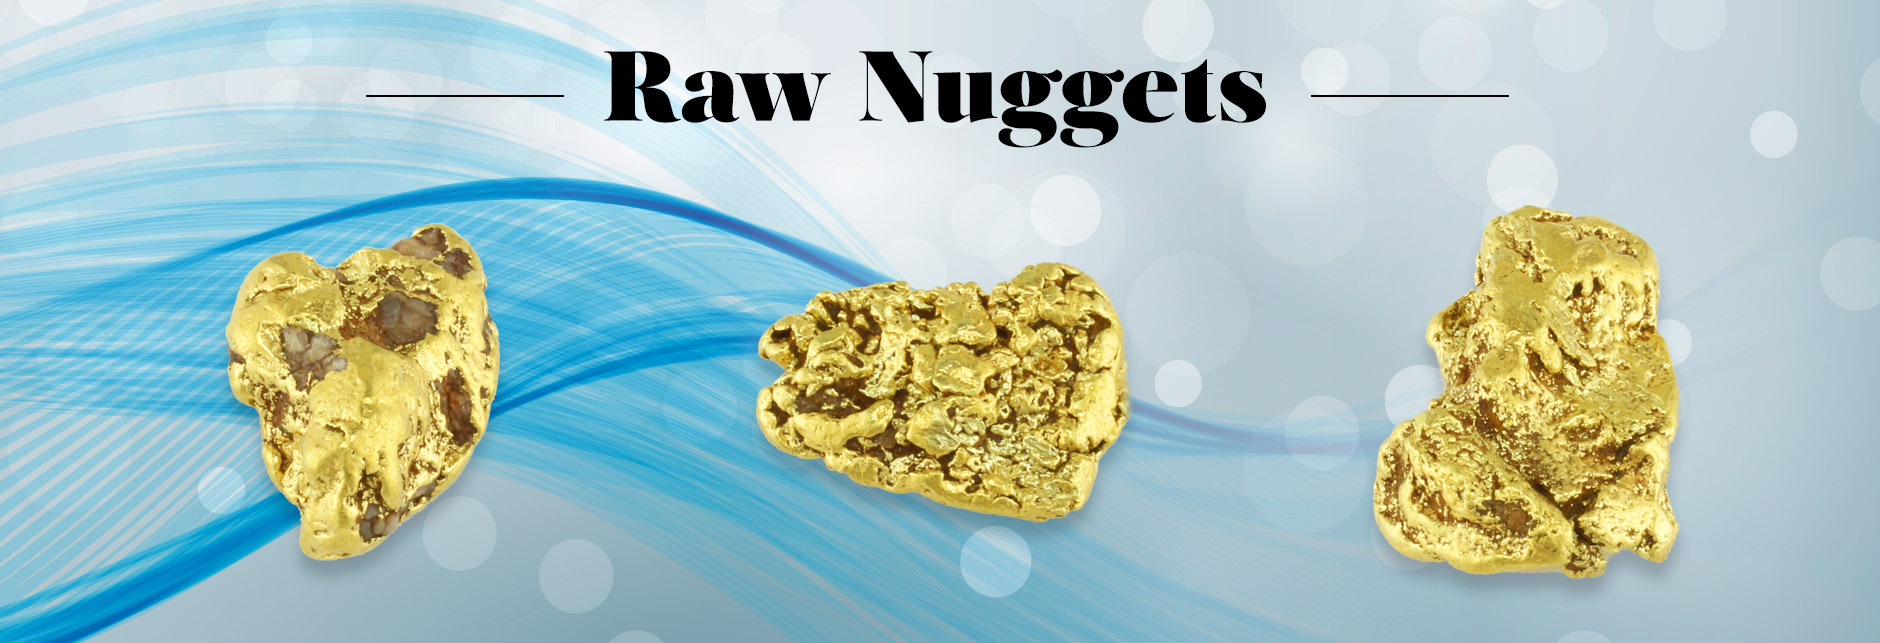 nuggets-header-pic.jpg